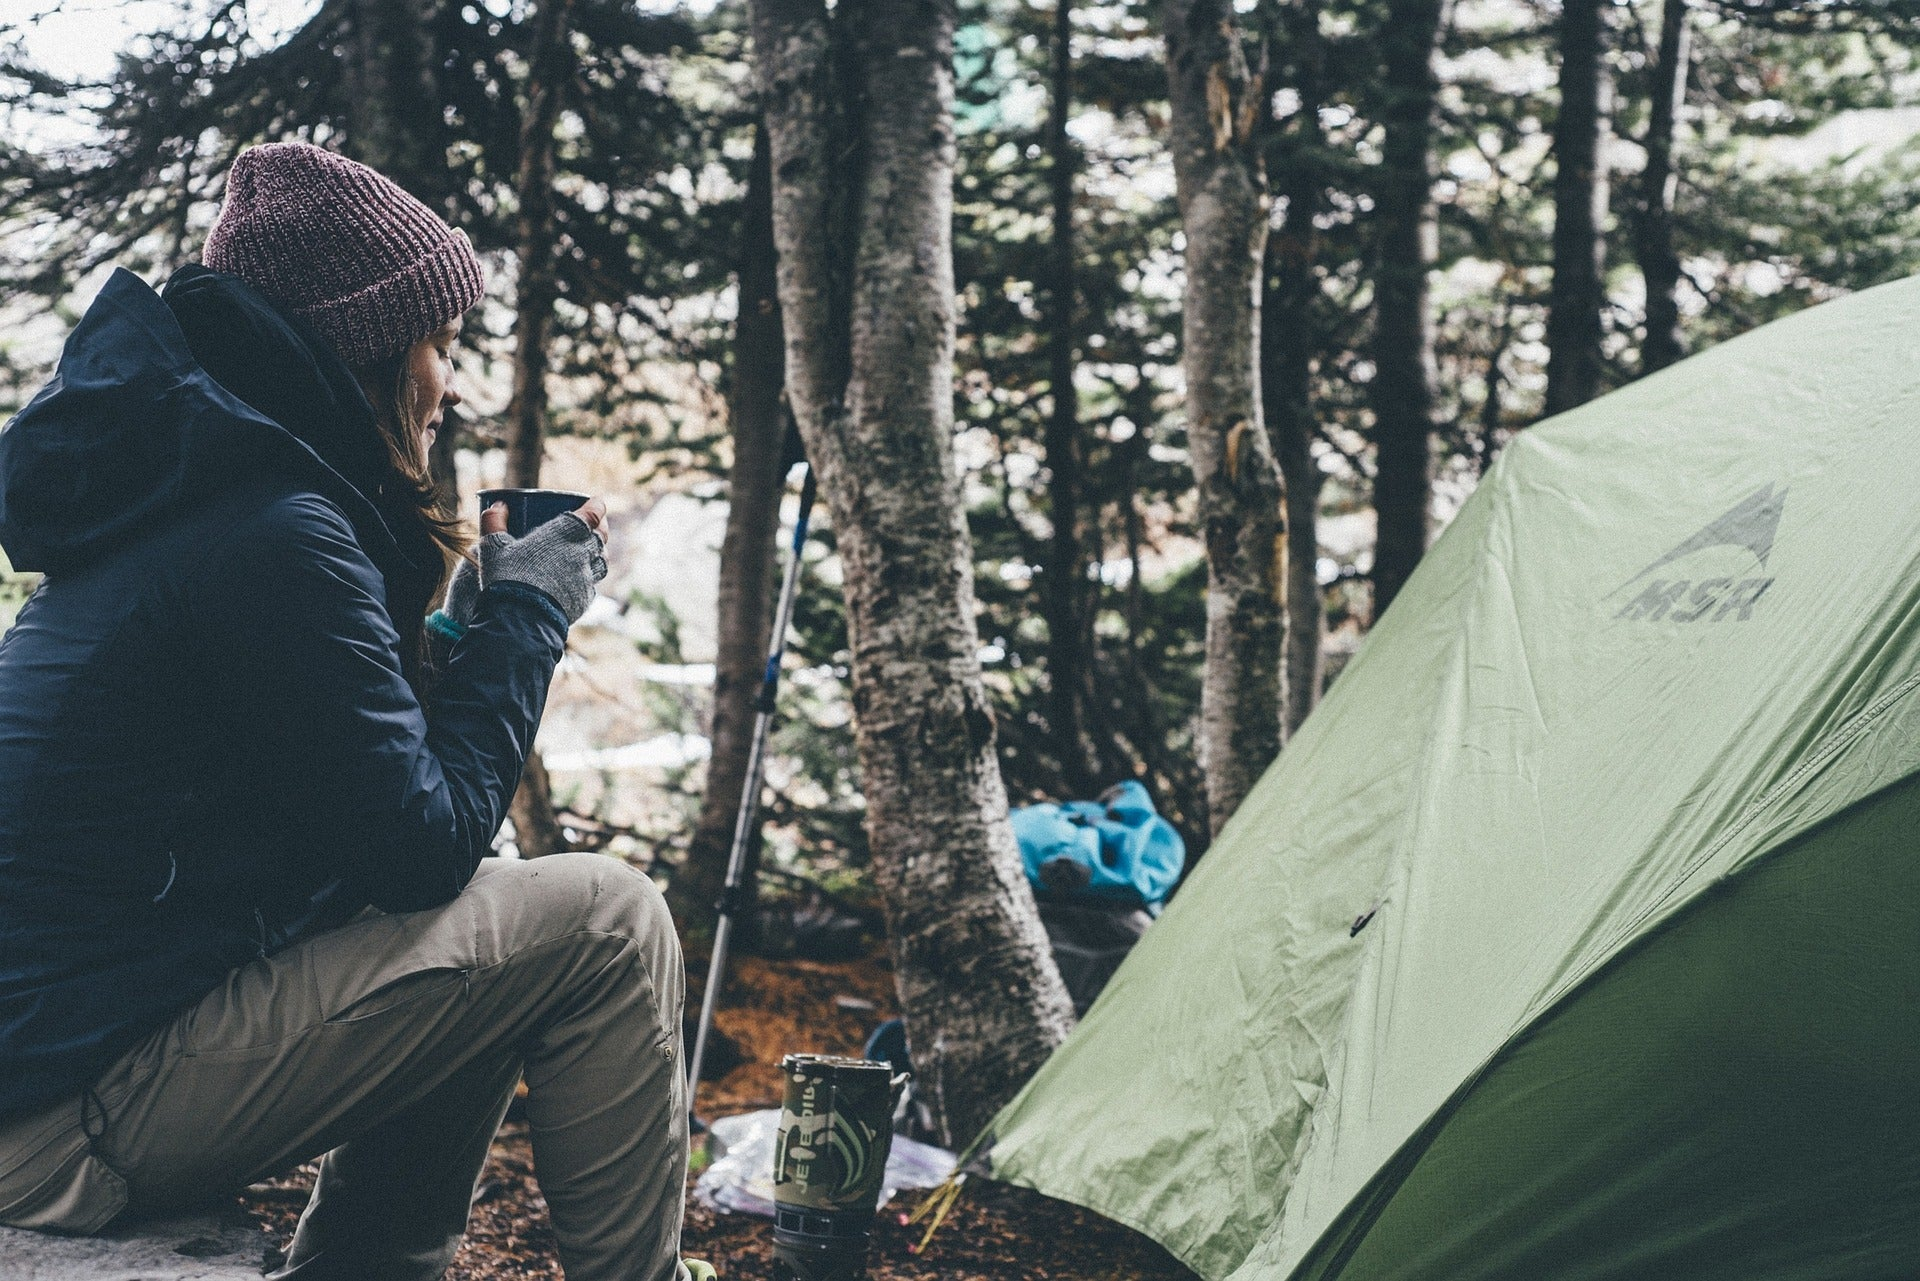 How to make your outdoor gear last longer